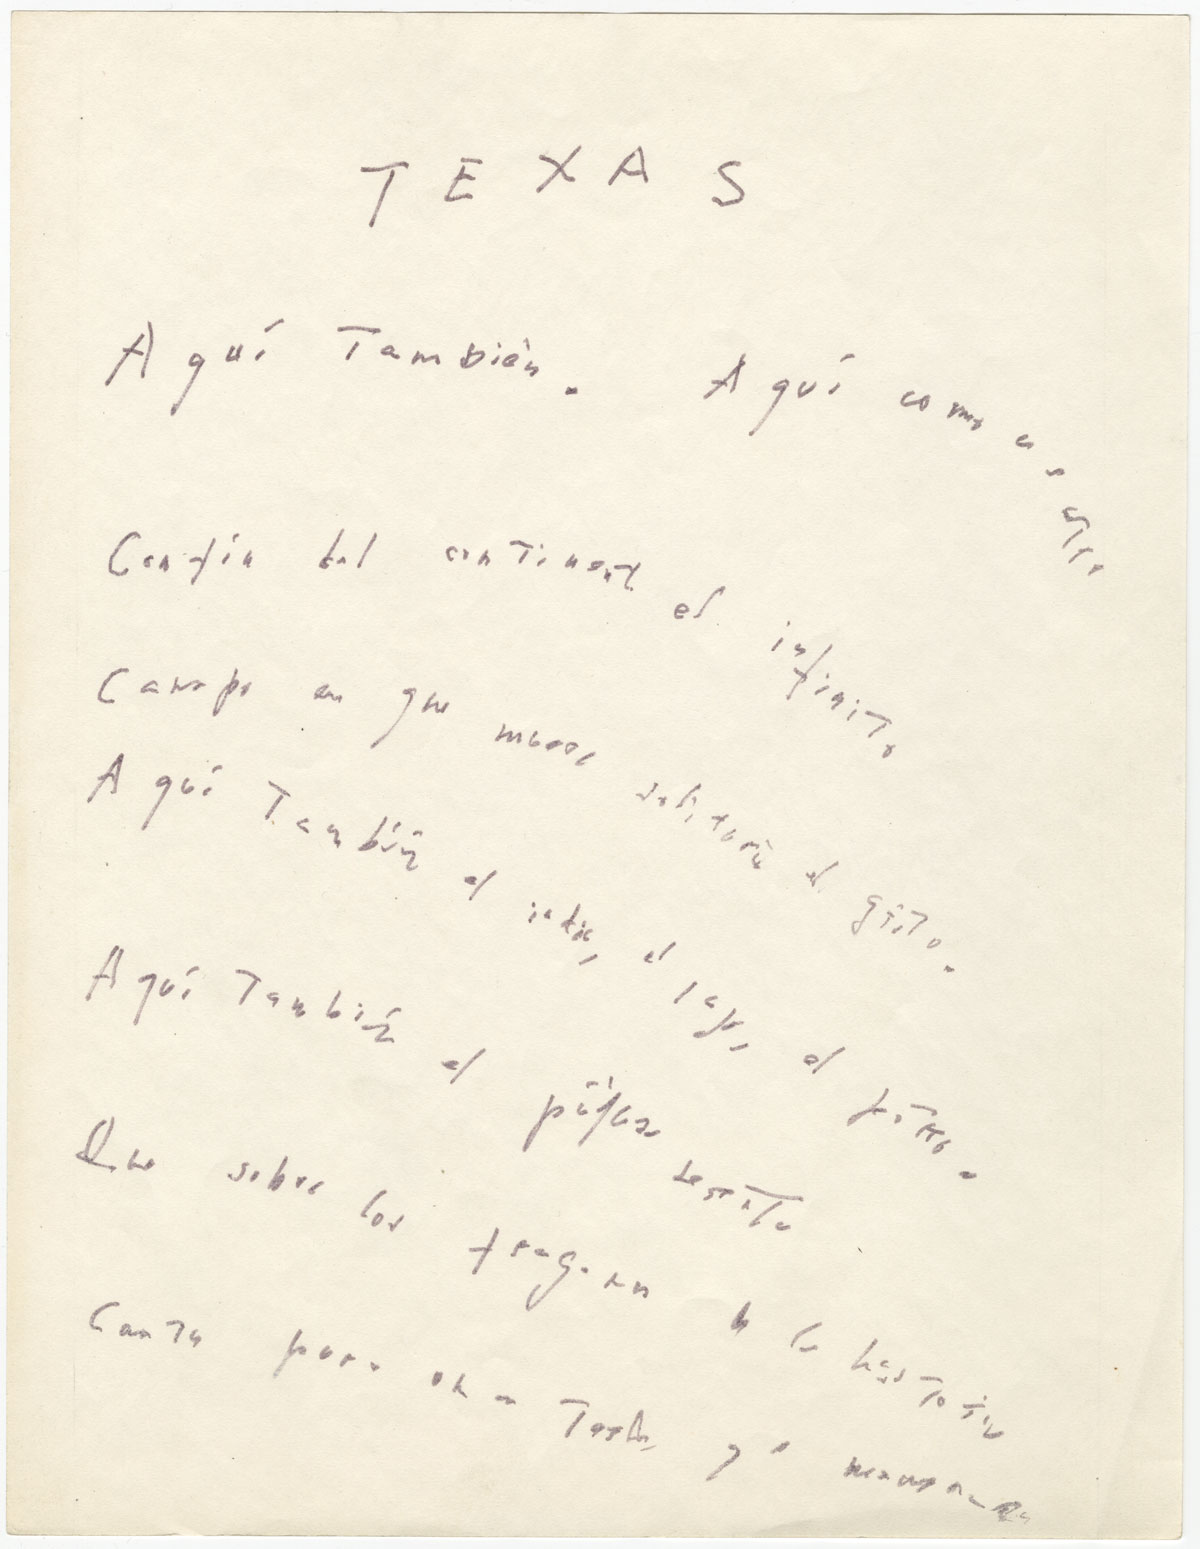 "Jorge Luis Borges,""Texas"" (page 1). From the manuscripts collection at the Harry Ransom Center. / Jorge Luis Borges, ""Texas"" (página 1). De la colección de manuscritos en el Harry Ransom Center."